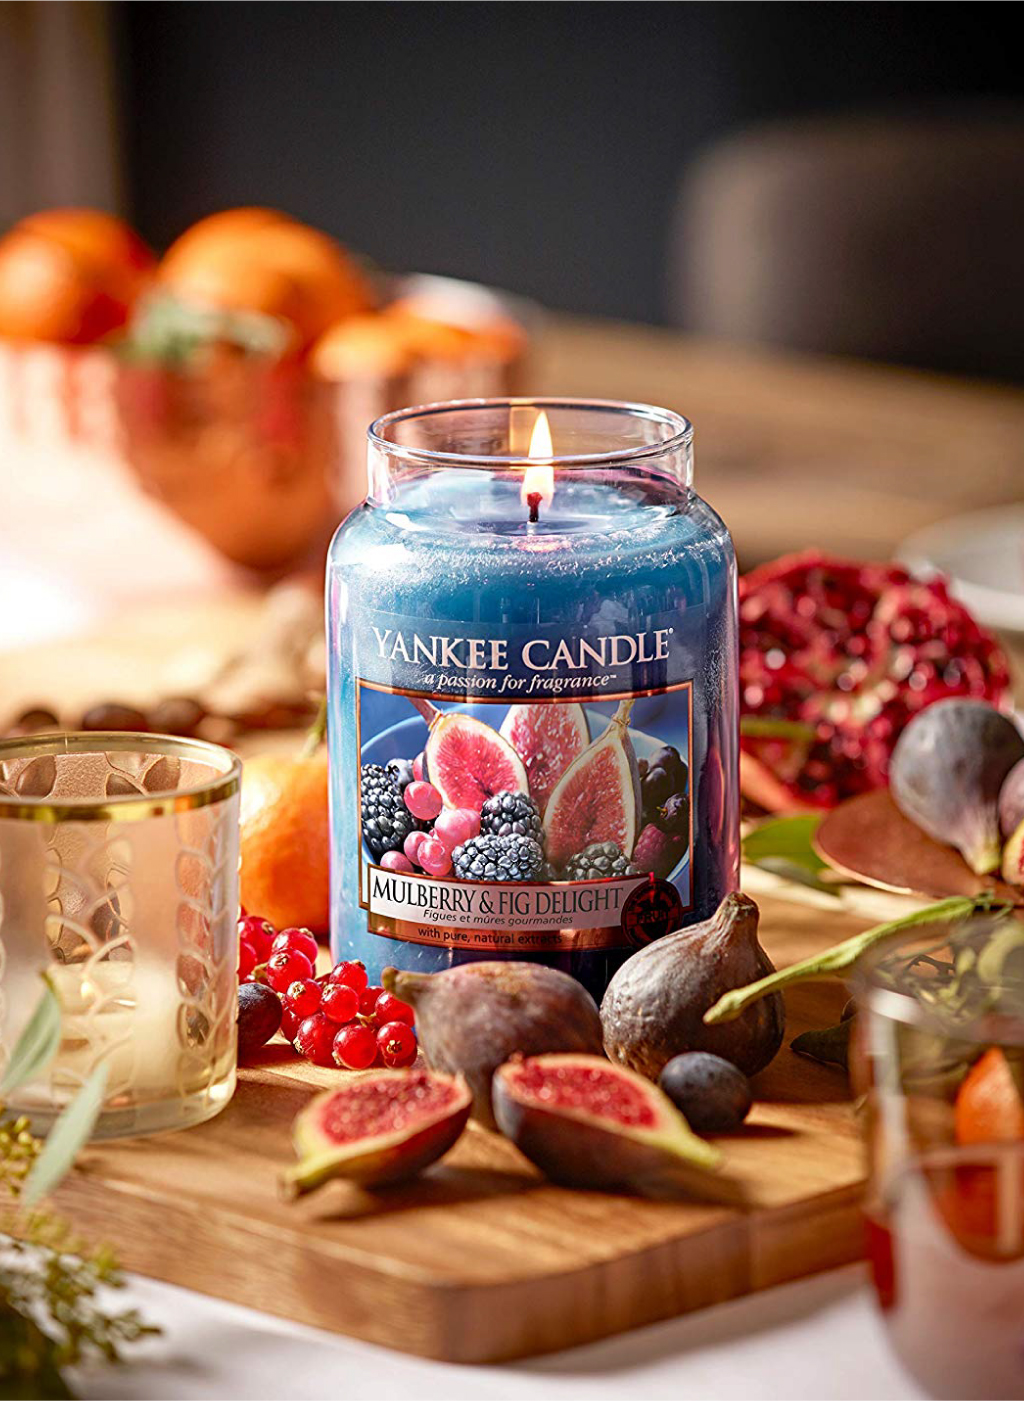 Mulberry Fig Delight Yankee Candle